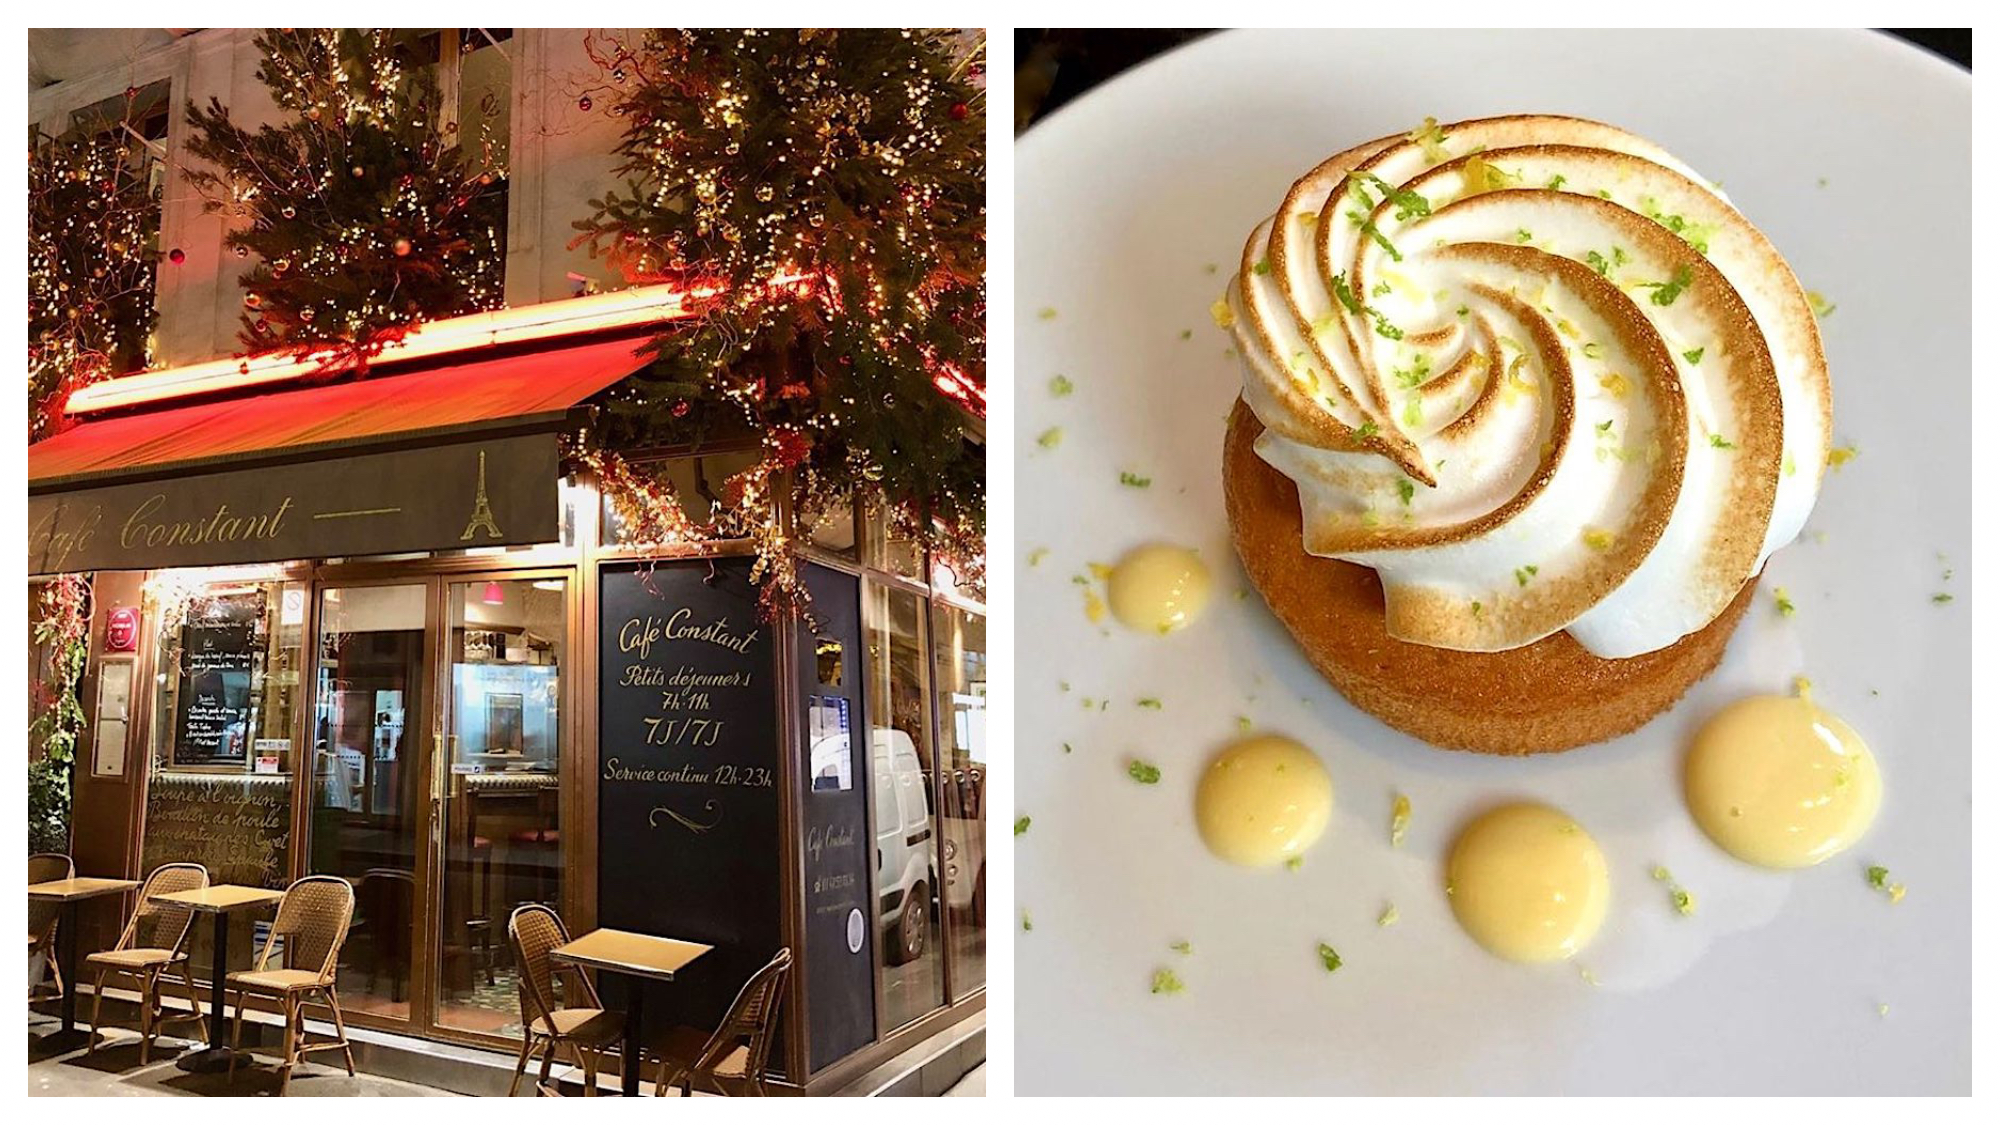 On the left: Café Constant in Paris decorates for Christmas with three sparkling Christmas trees on its facade. On the right, the café's luscious lemon tart sits under a crown of toasted meringue.